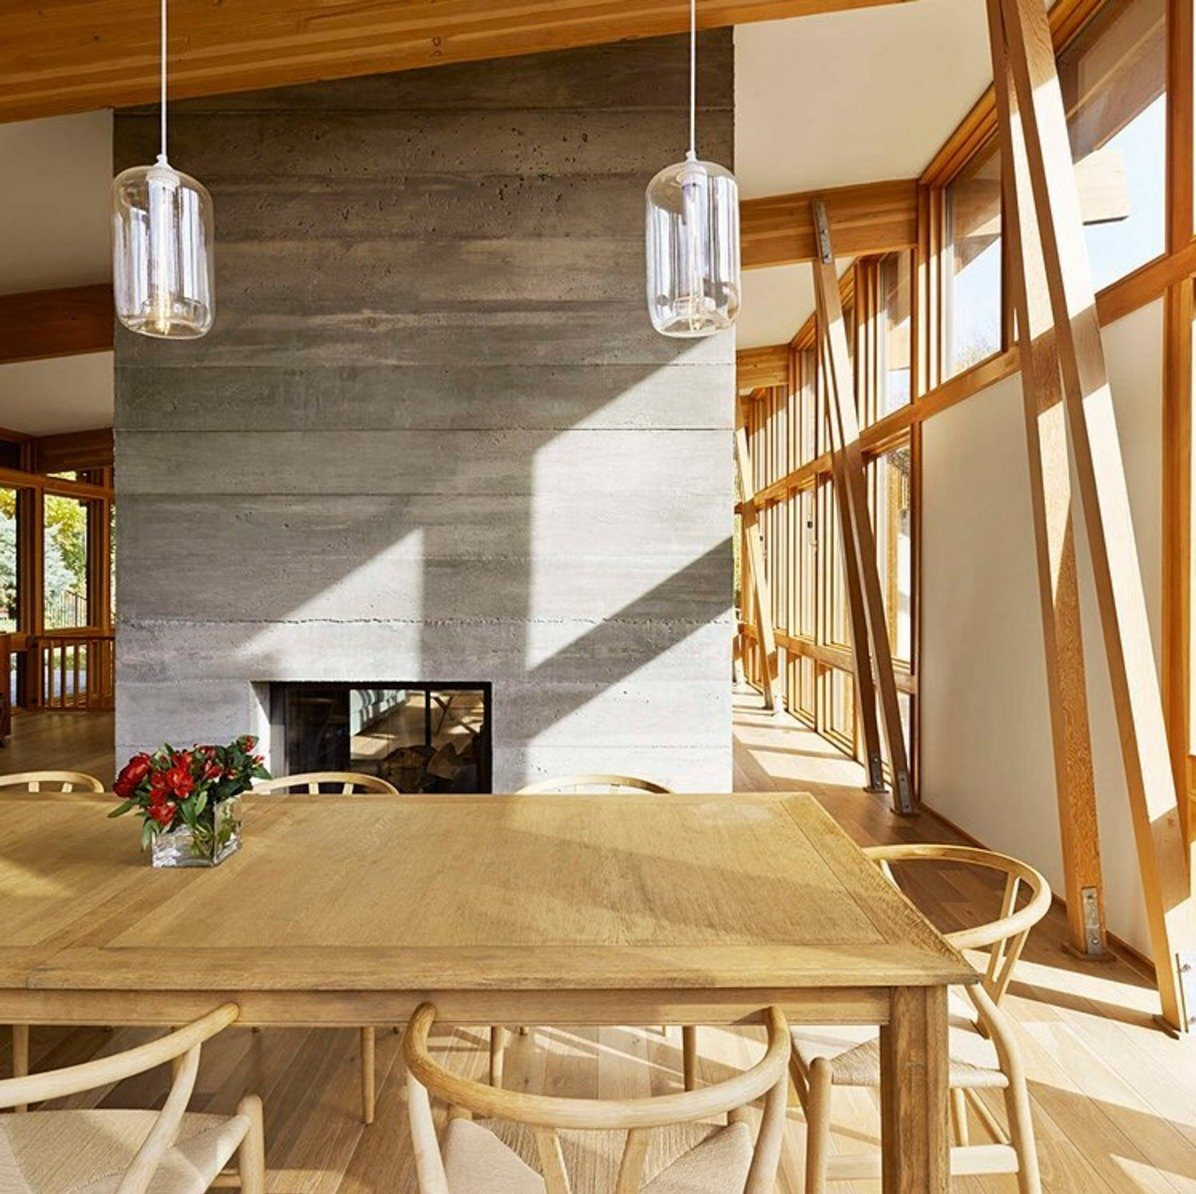 Take a peek at 3 #kitchen #table #pendant #lighting installations that embrace #midcentury #modern. Featured interior designed by Ole Sondresen.